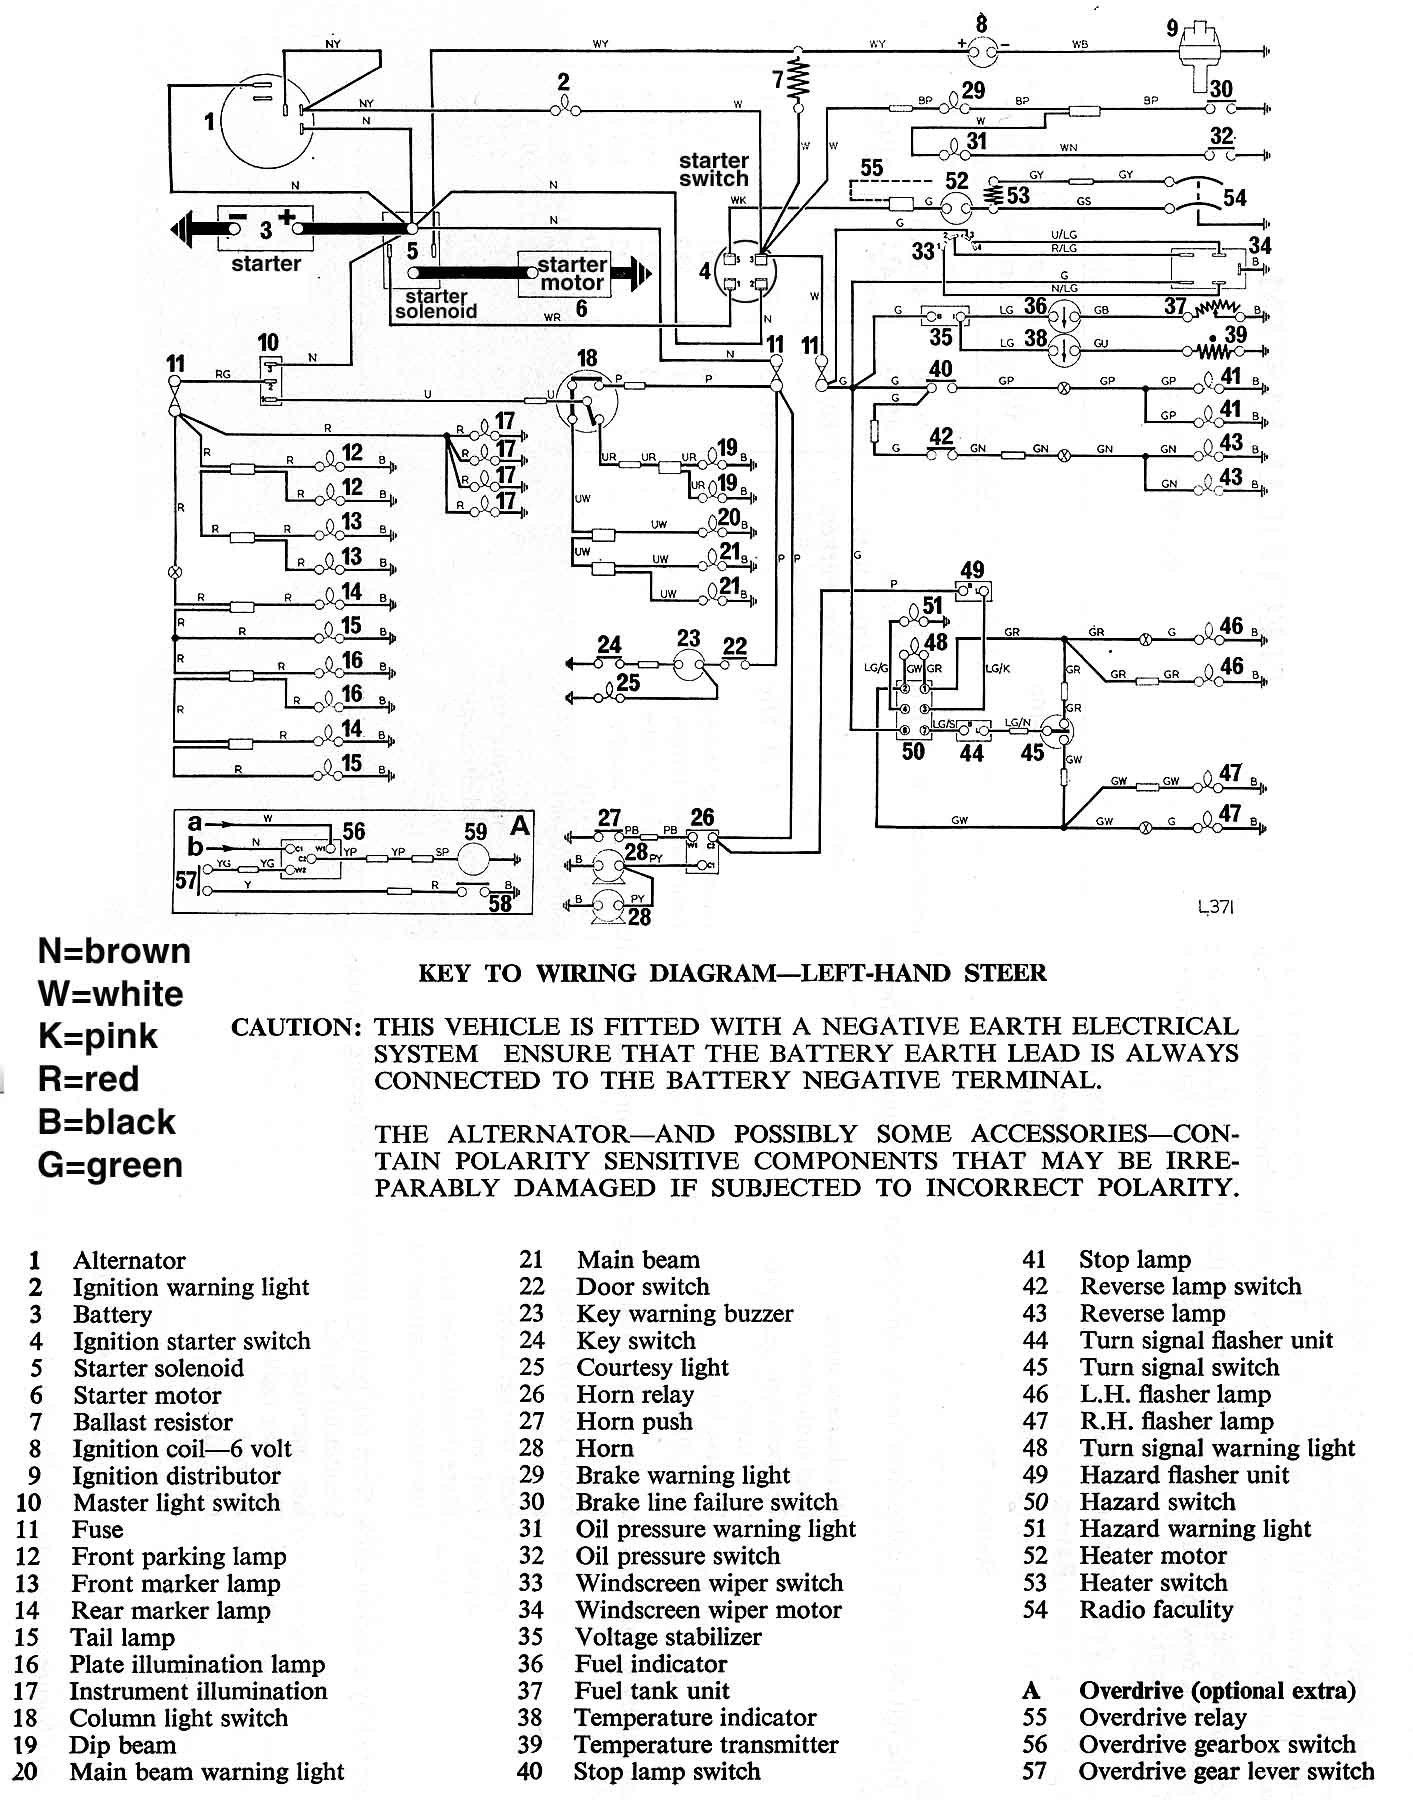 triumph tr6 dash wiring diagram different types of relationships in uml diagrams 1973 spitfire 1500 project january 2014